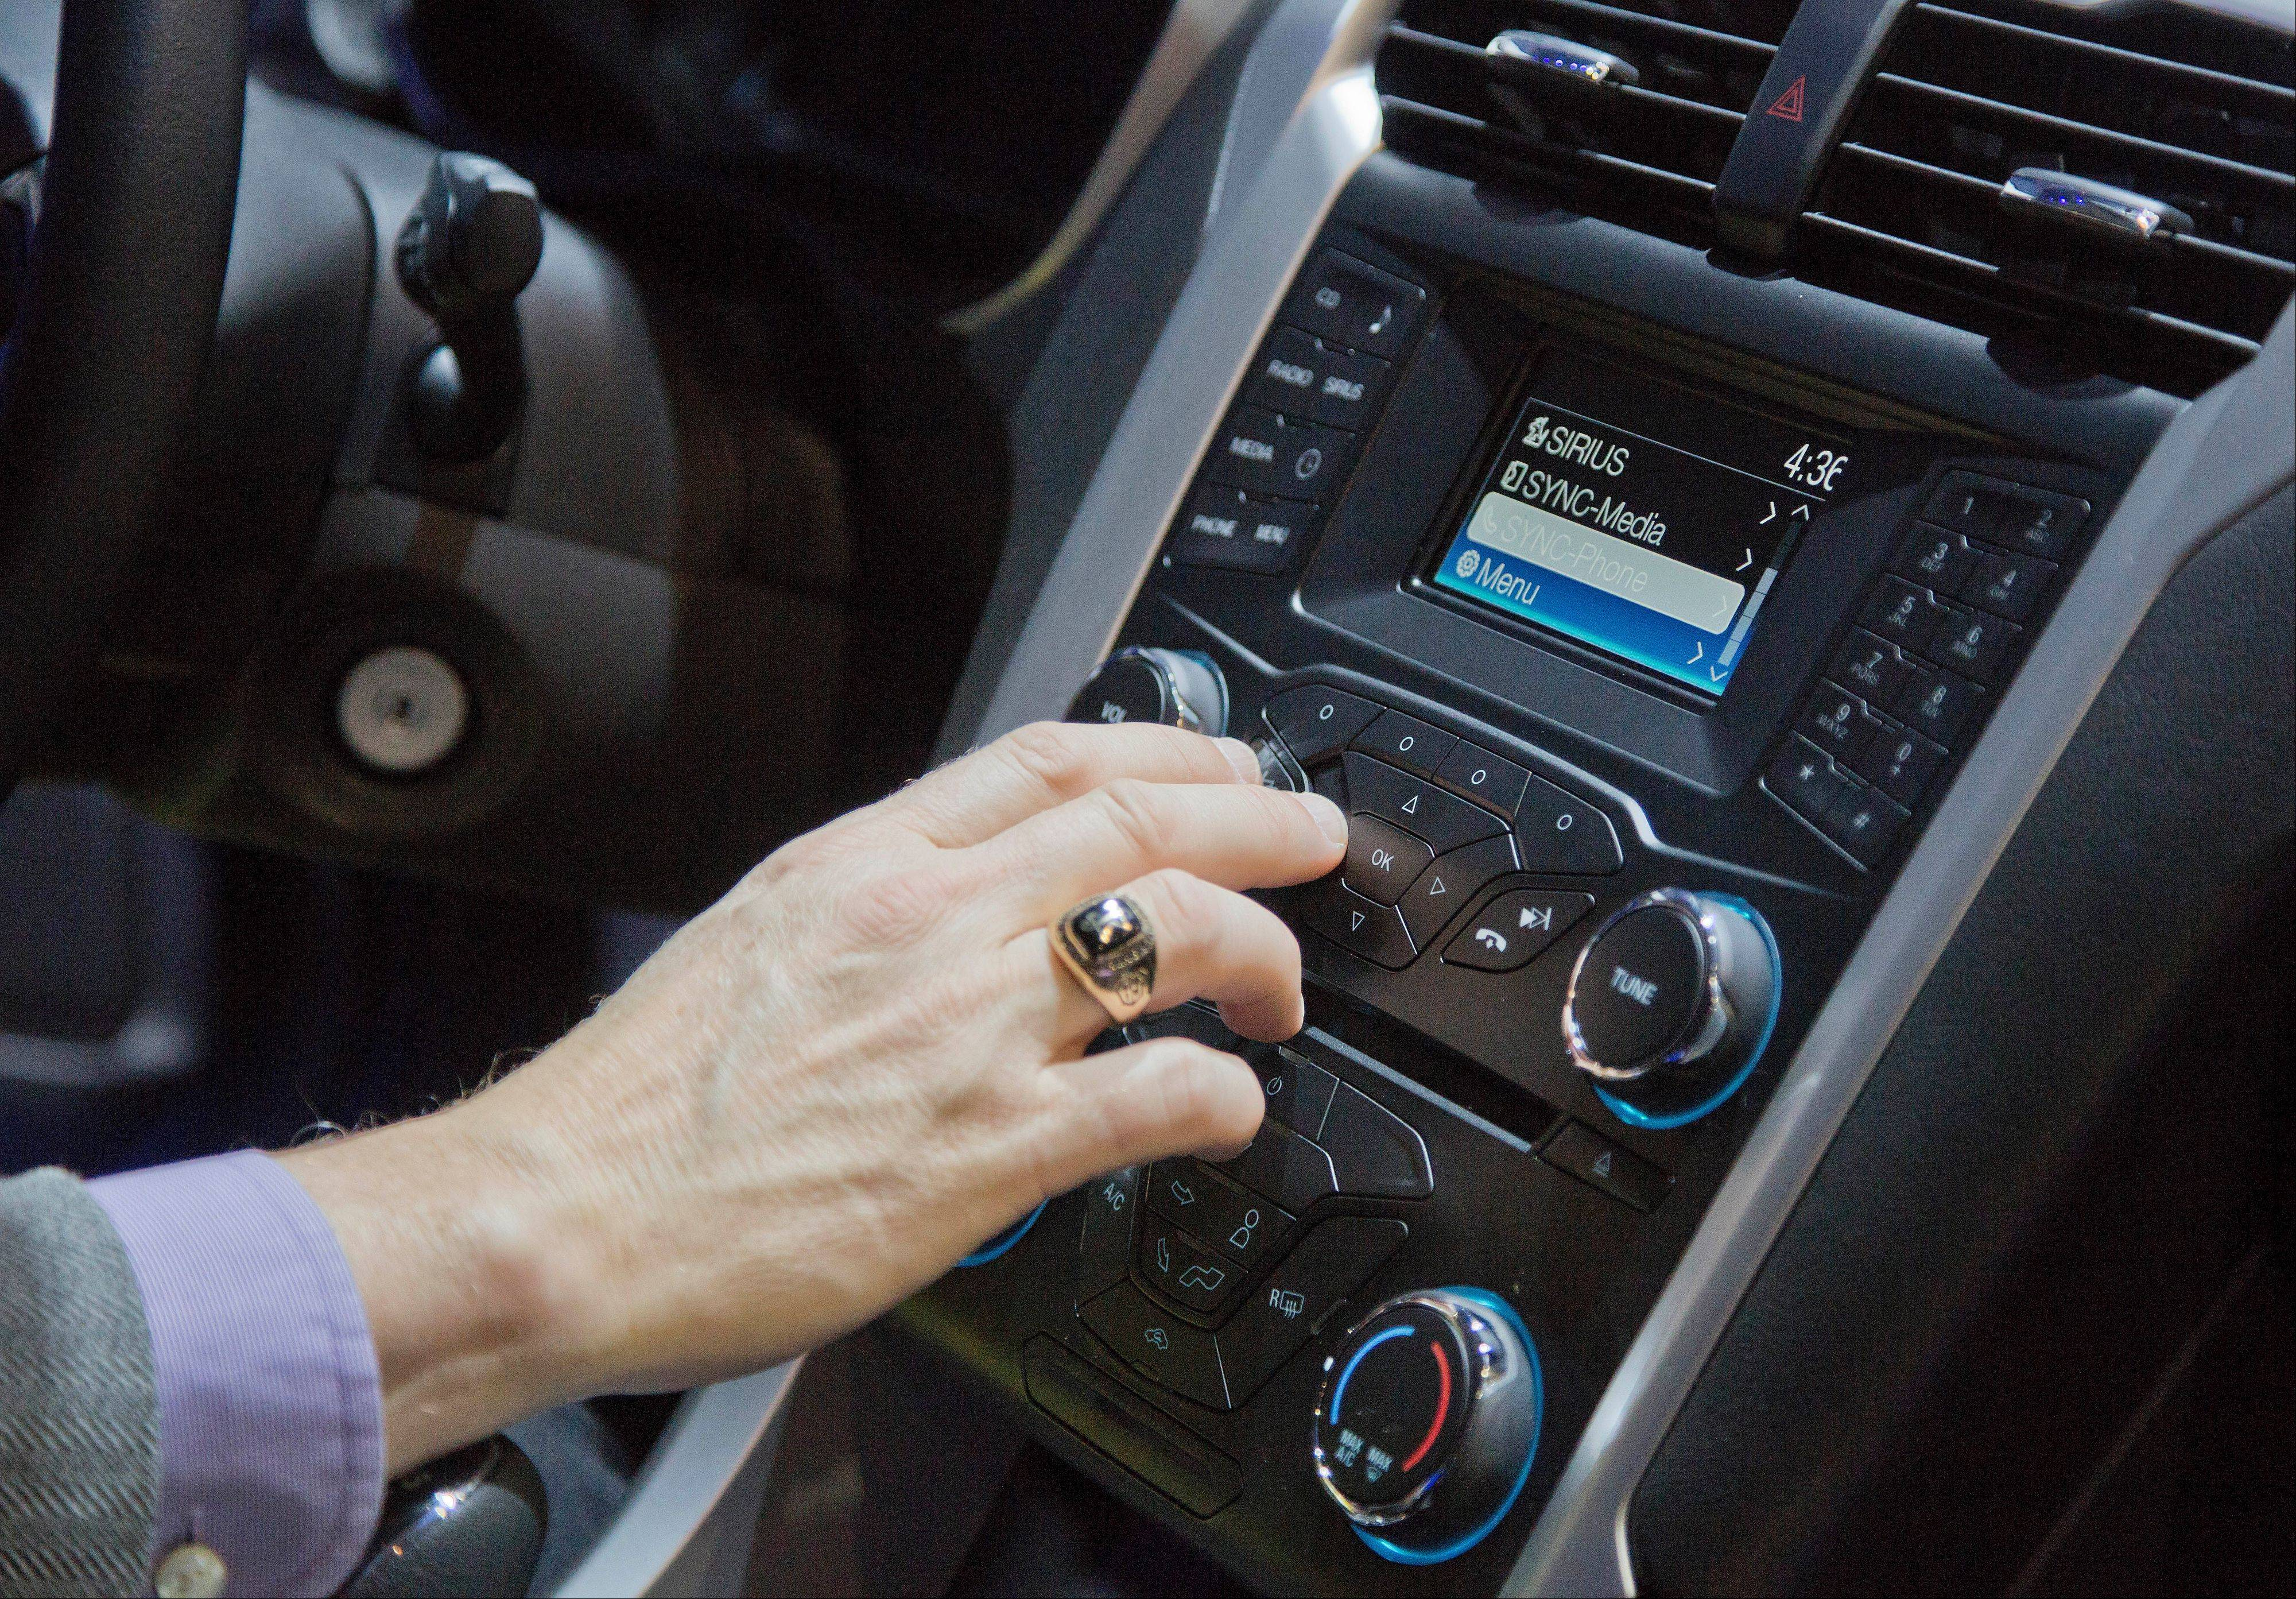 Ford's SYNC connection and entertainment system is tested inside a Ford Fusion at the Consumer Electronics Show in Las Vegas. Ford's SYNC connects the car stereo and navigation system to a user's mobile device.